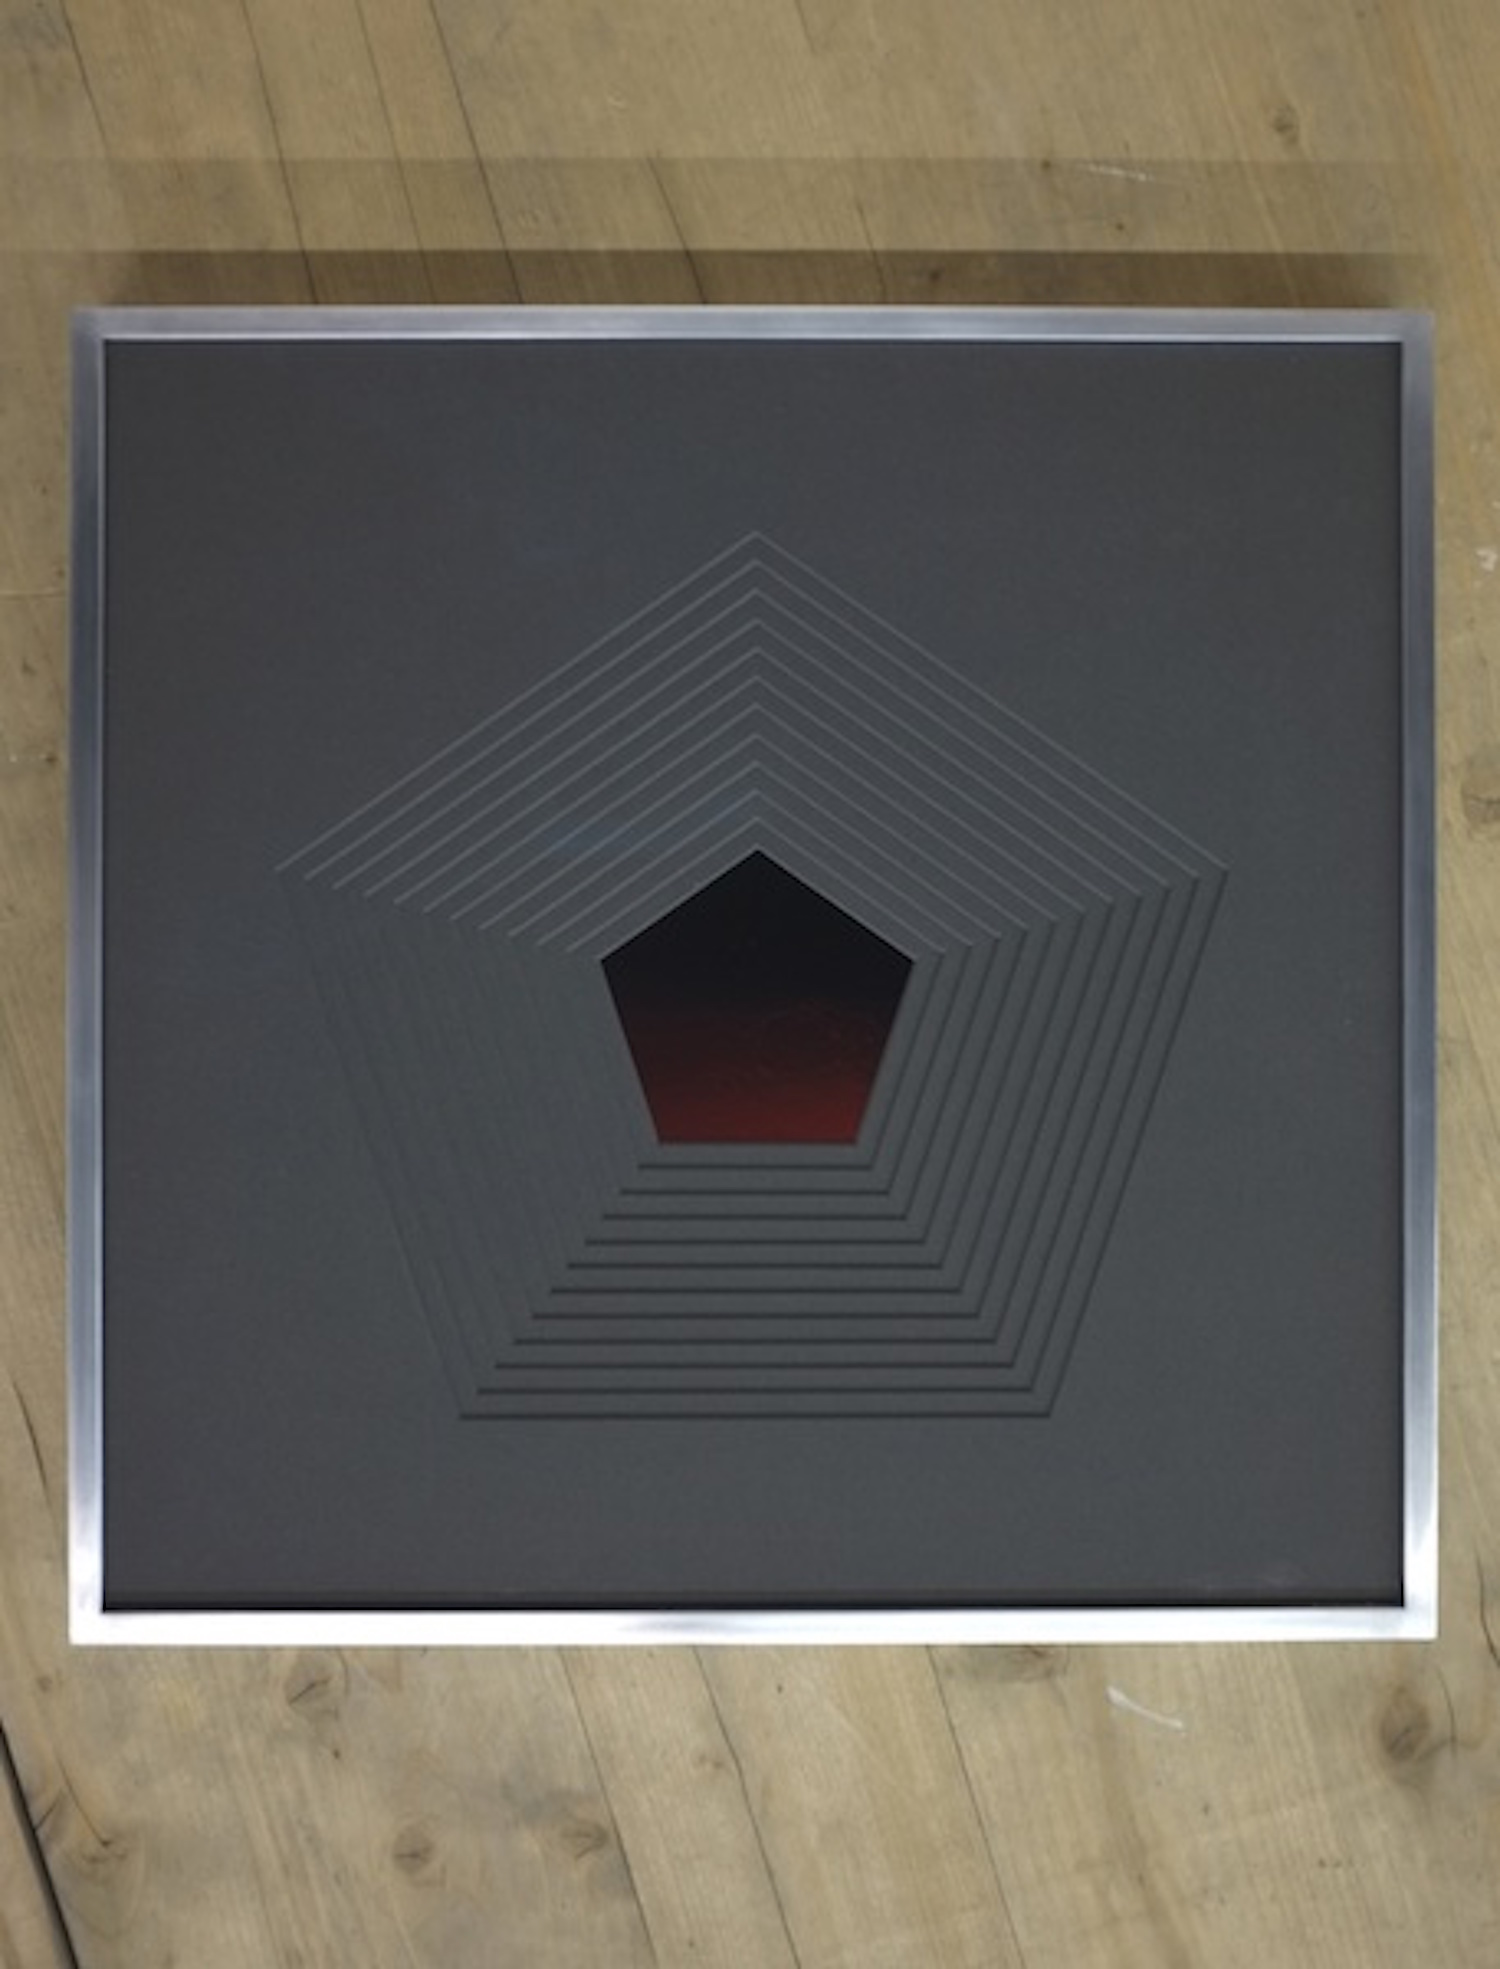 Michael John Whelan  In Embers (Dodecahedron) #2 2013 C-Type photographs, framed 36 x 36 cm Edition of 3 + 1AP.